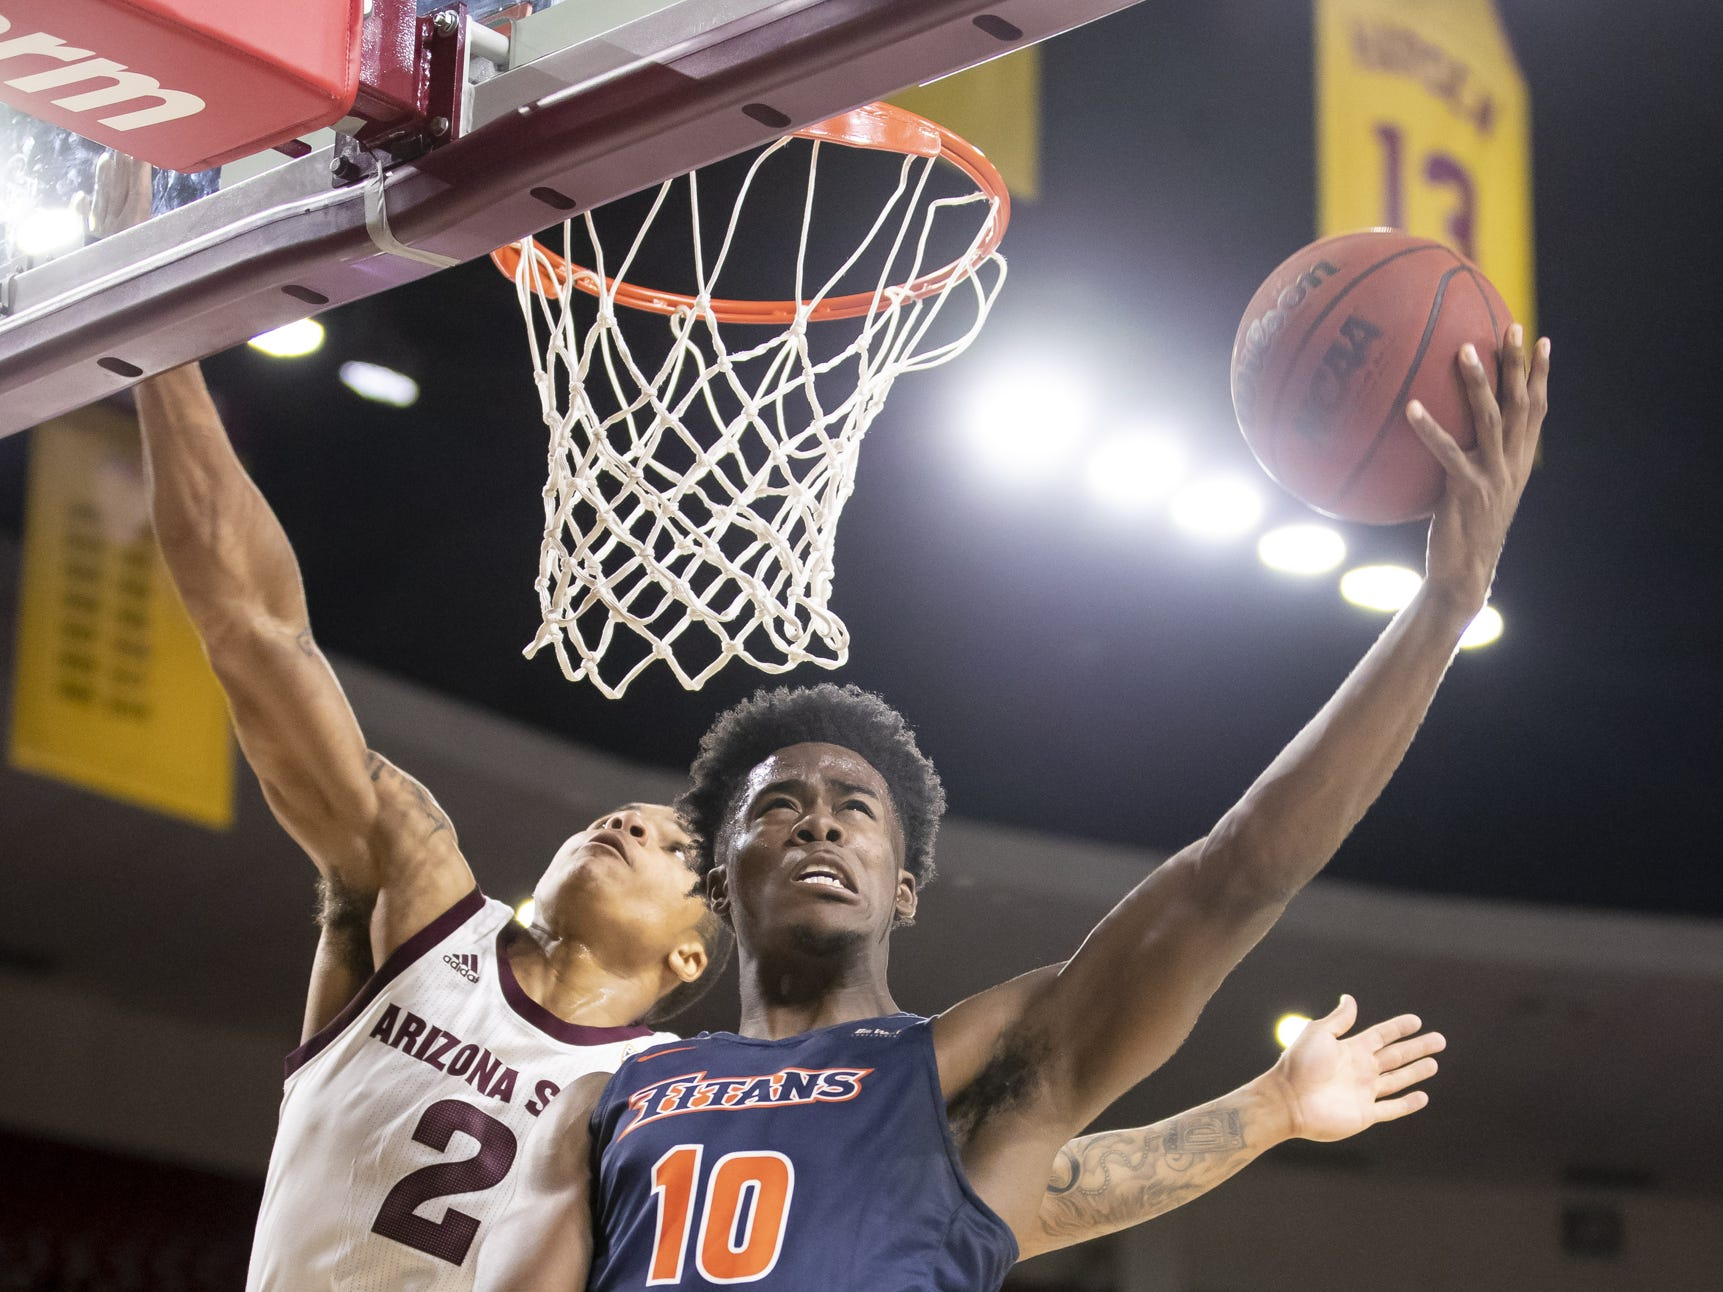 Guard Austen Awosika (10) of the Cal State Fullerton Titans drives to the basket against Rob Edwards (2) of the Arizona State Sun Devils at Wells Fargo Arena on Tuesday, November 6, 2018 in Tempe, Arizona.